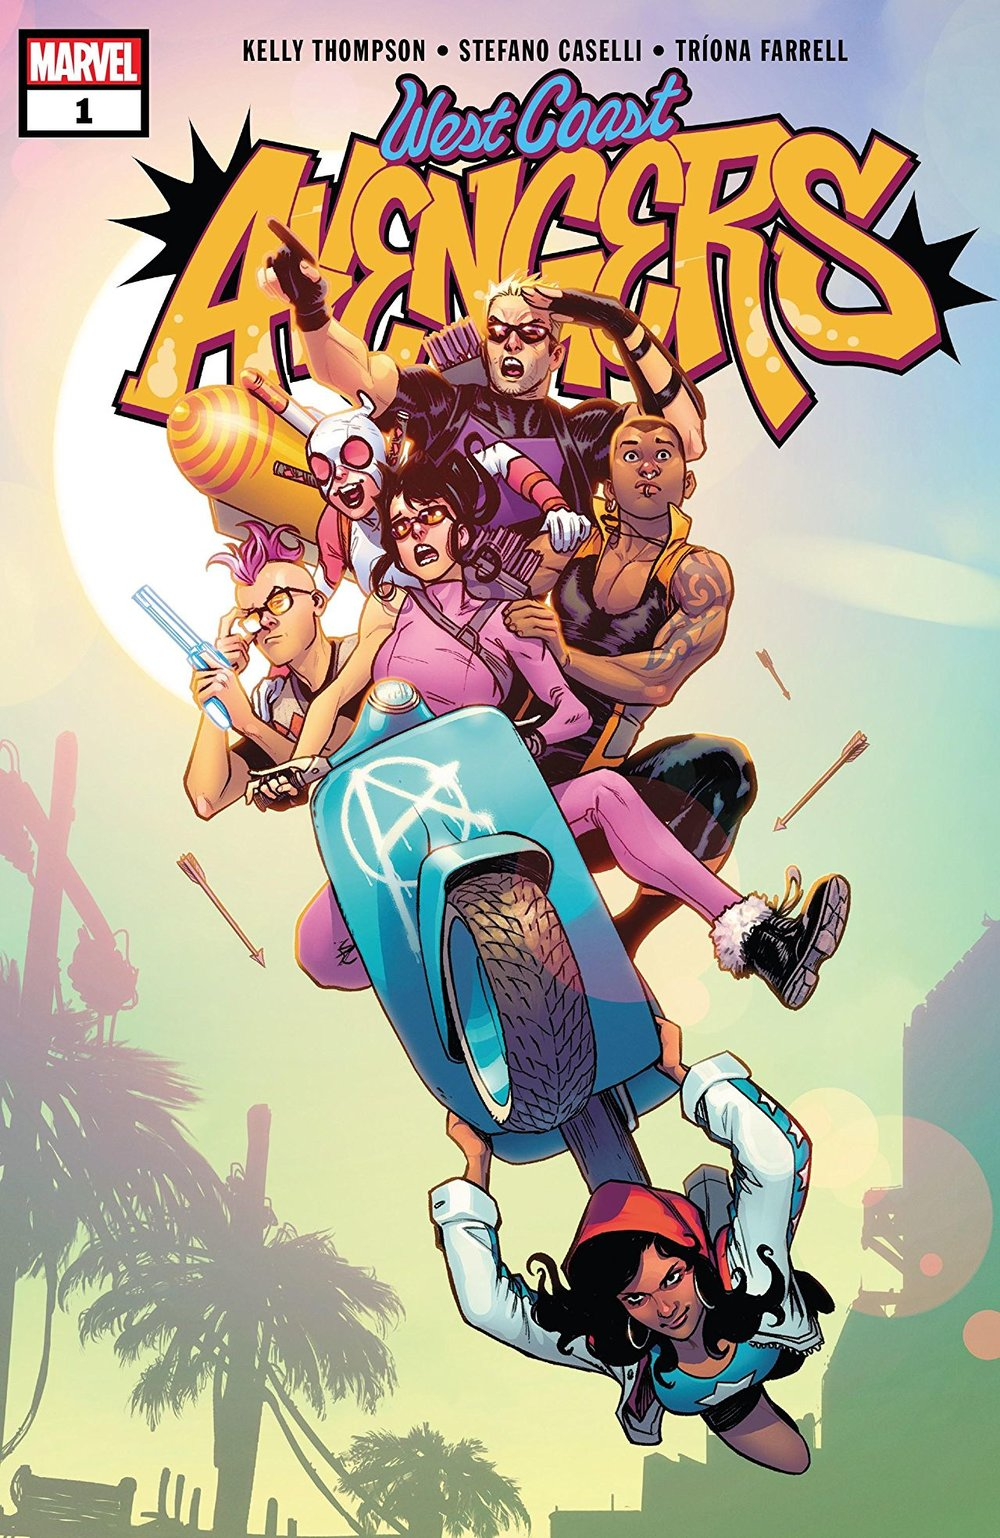 Image of the West Coast Avengers cover. The team is front and center riding on a motorcycle through the air: Quentin Quire, Clint/Kate/Hawkeye, Gwen-Pool, and Fuse. America Chavez is hanging off the bike. The title, West Coast Avengers is displayed above in a graffiti style.